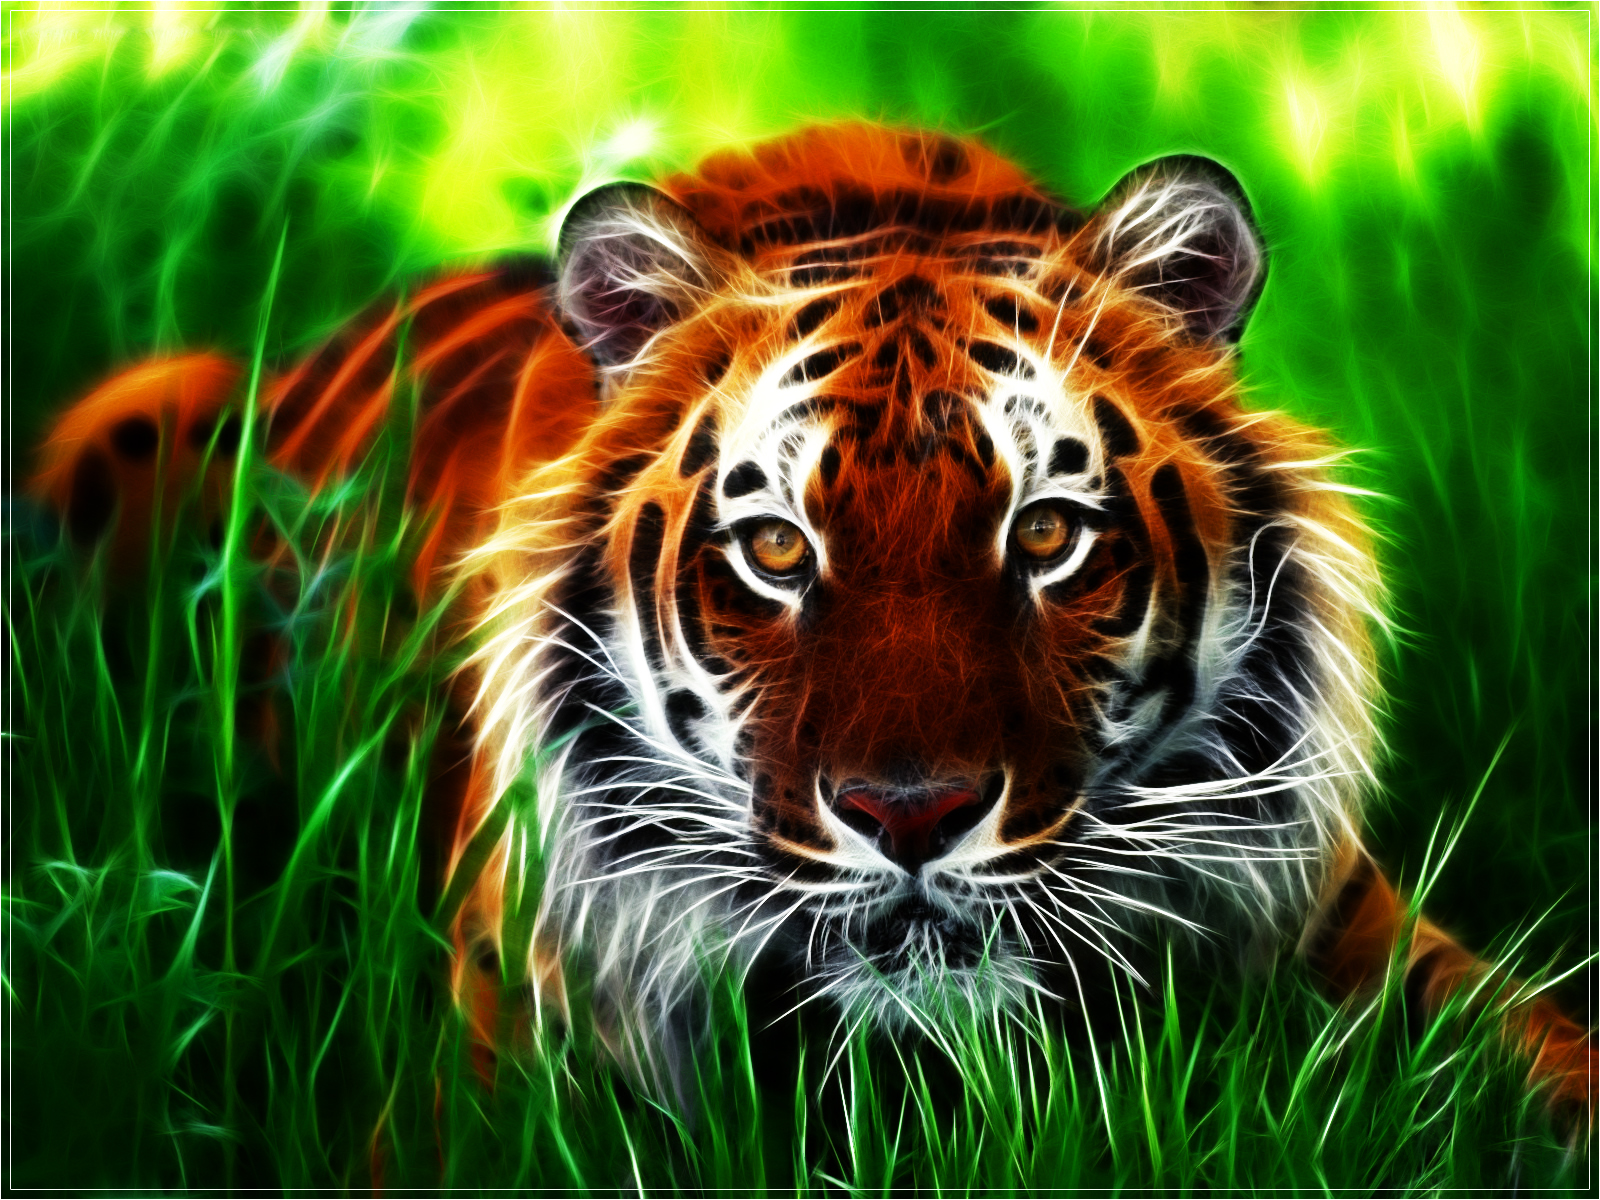 best size of Tiger Wallpaper and Desktop tiger wallpapers here in Hd 1600x1200